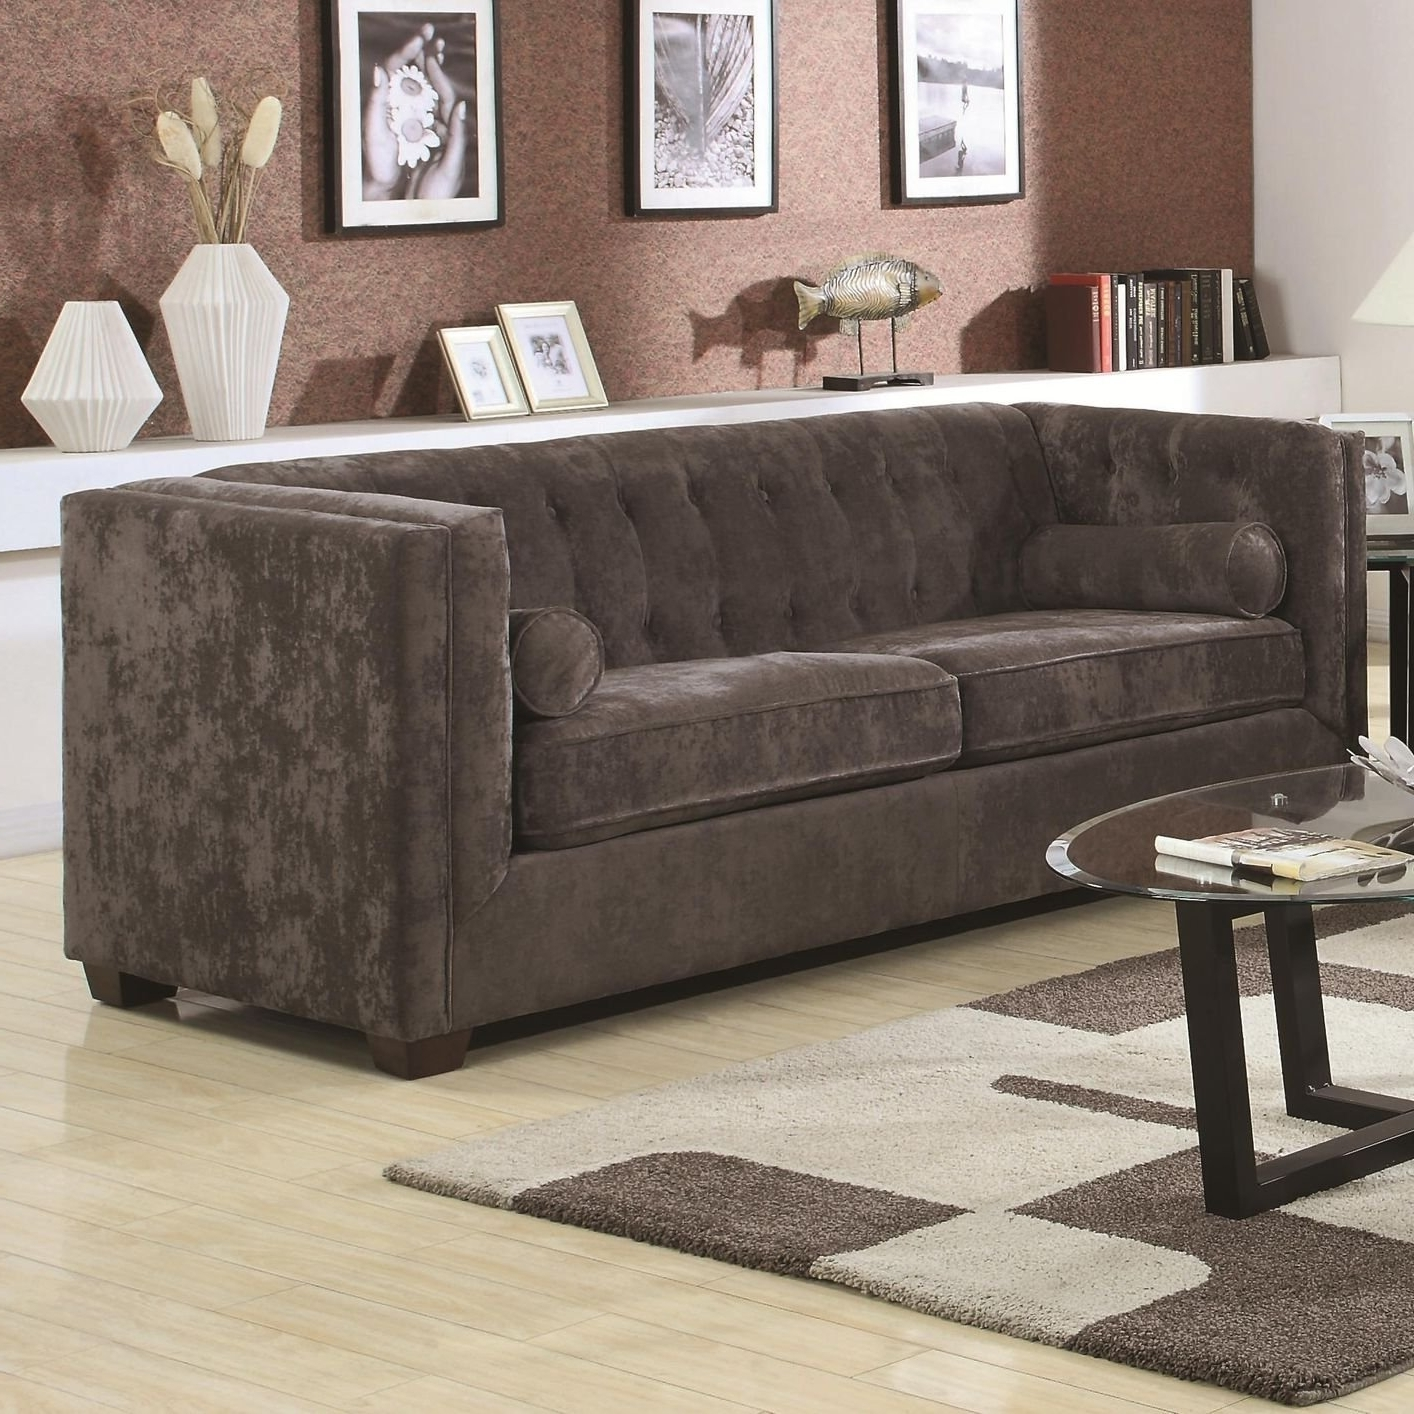 Most Current Dufresne Sectional Sofas Inside Furniture : Klaussner Alexis Sofa Sofa Set At Cheap Rate In (View 6 of 20)